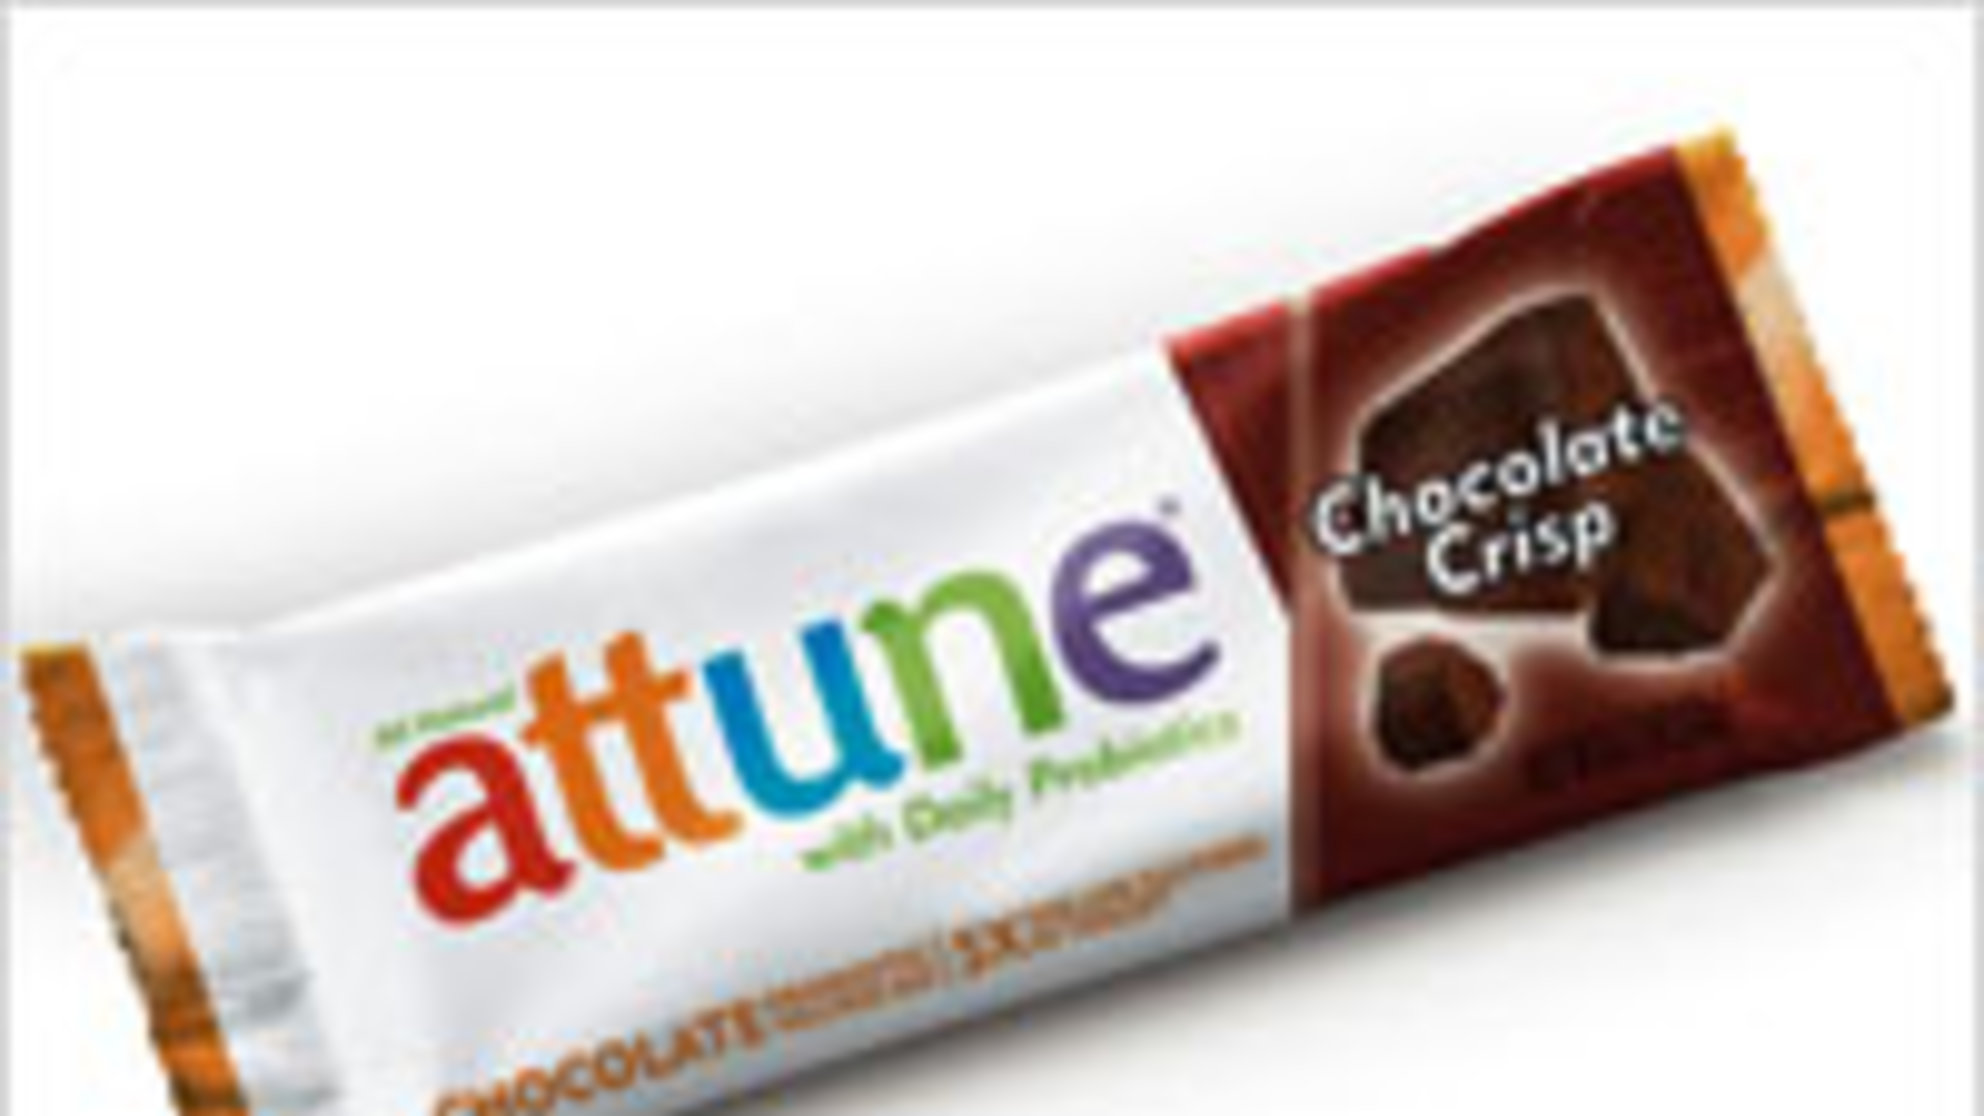 Attune Chocolate Crisp Bar